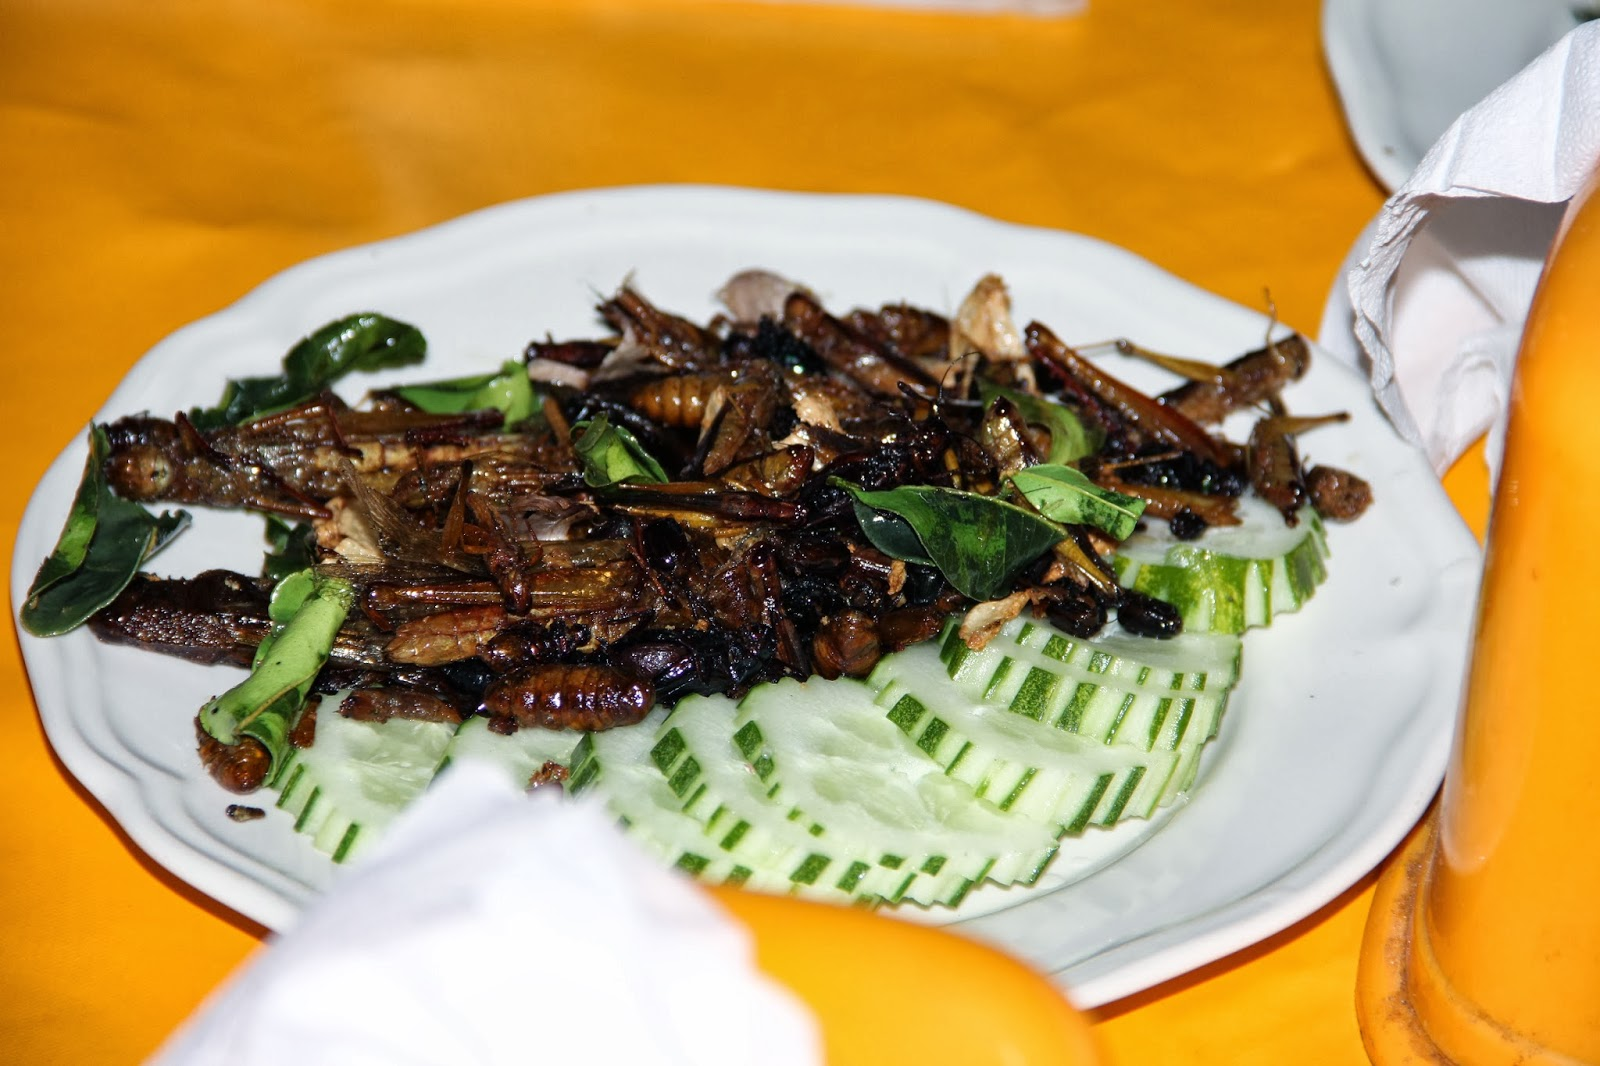 Fried grasshoppers.  Tasted just like CRUNCH!